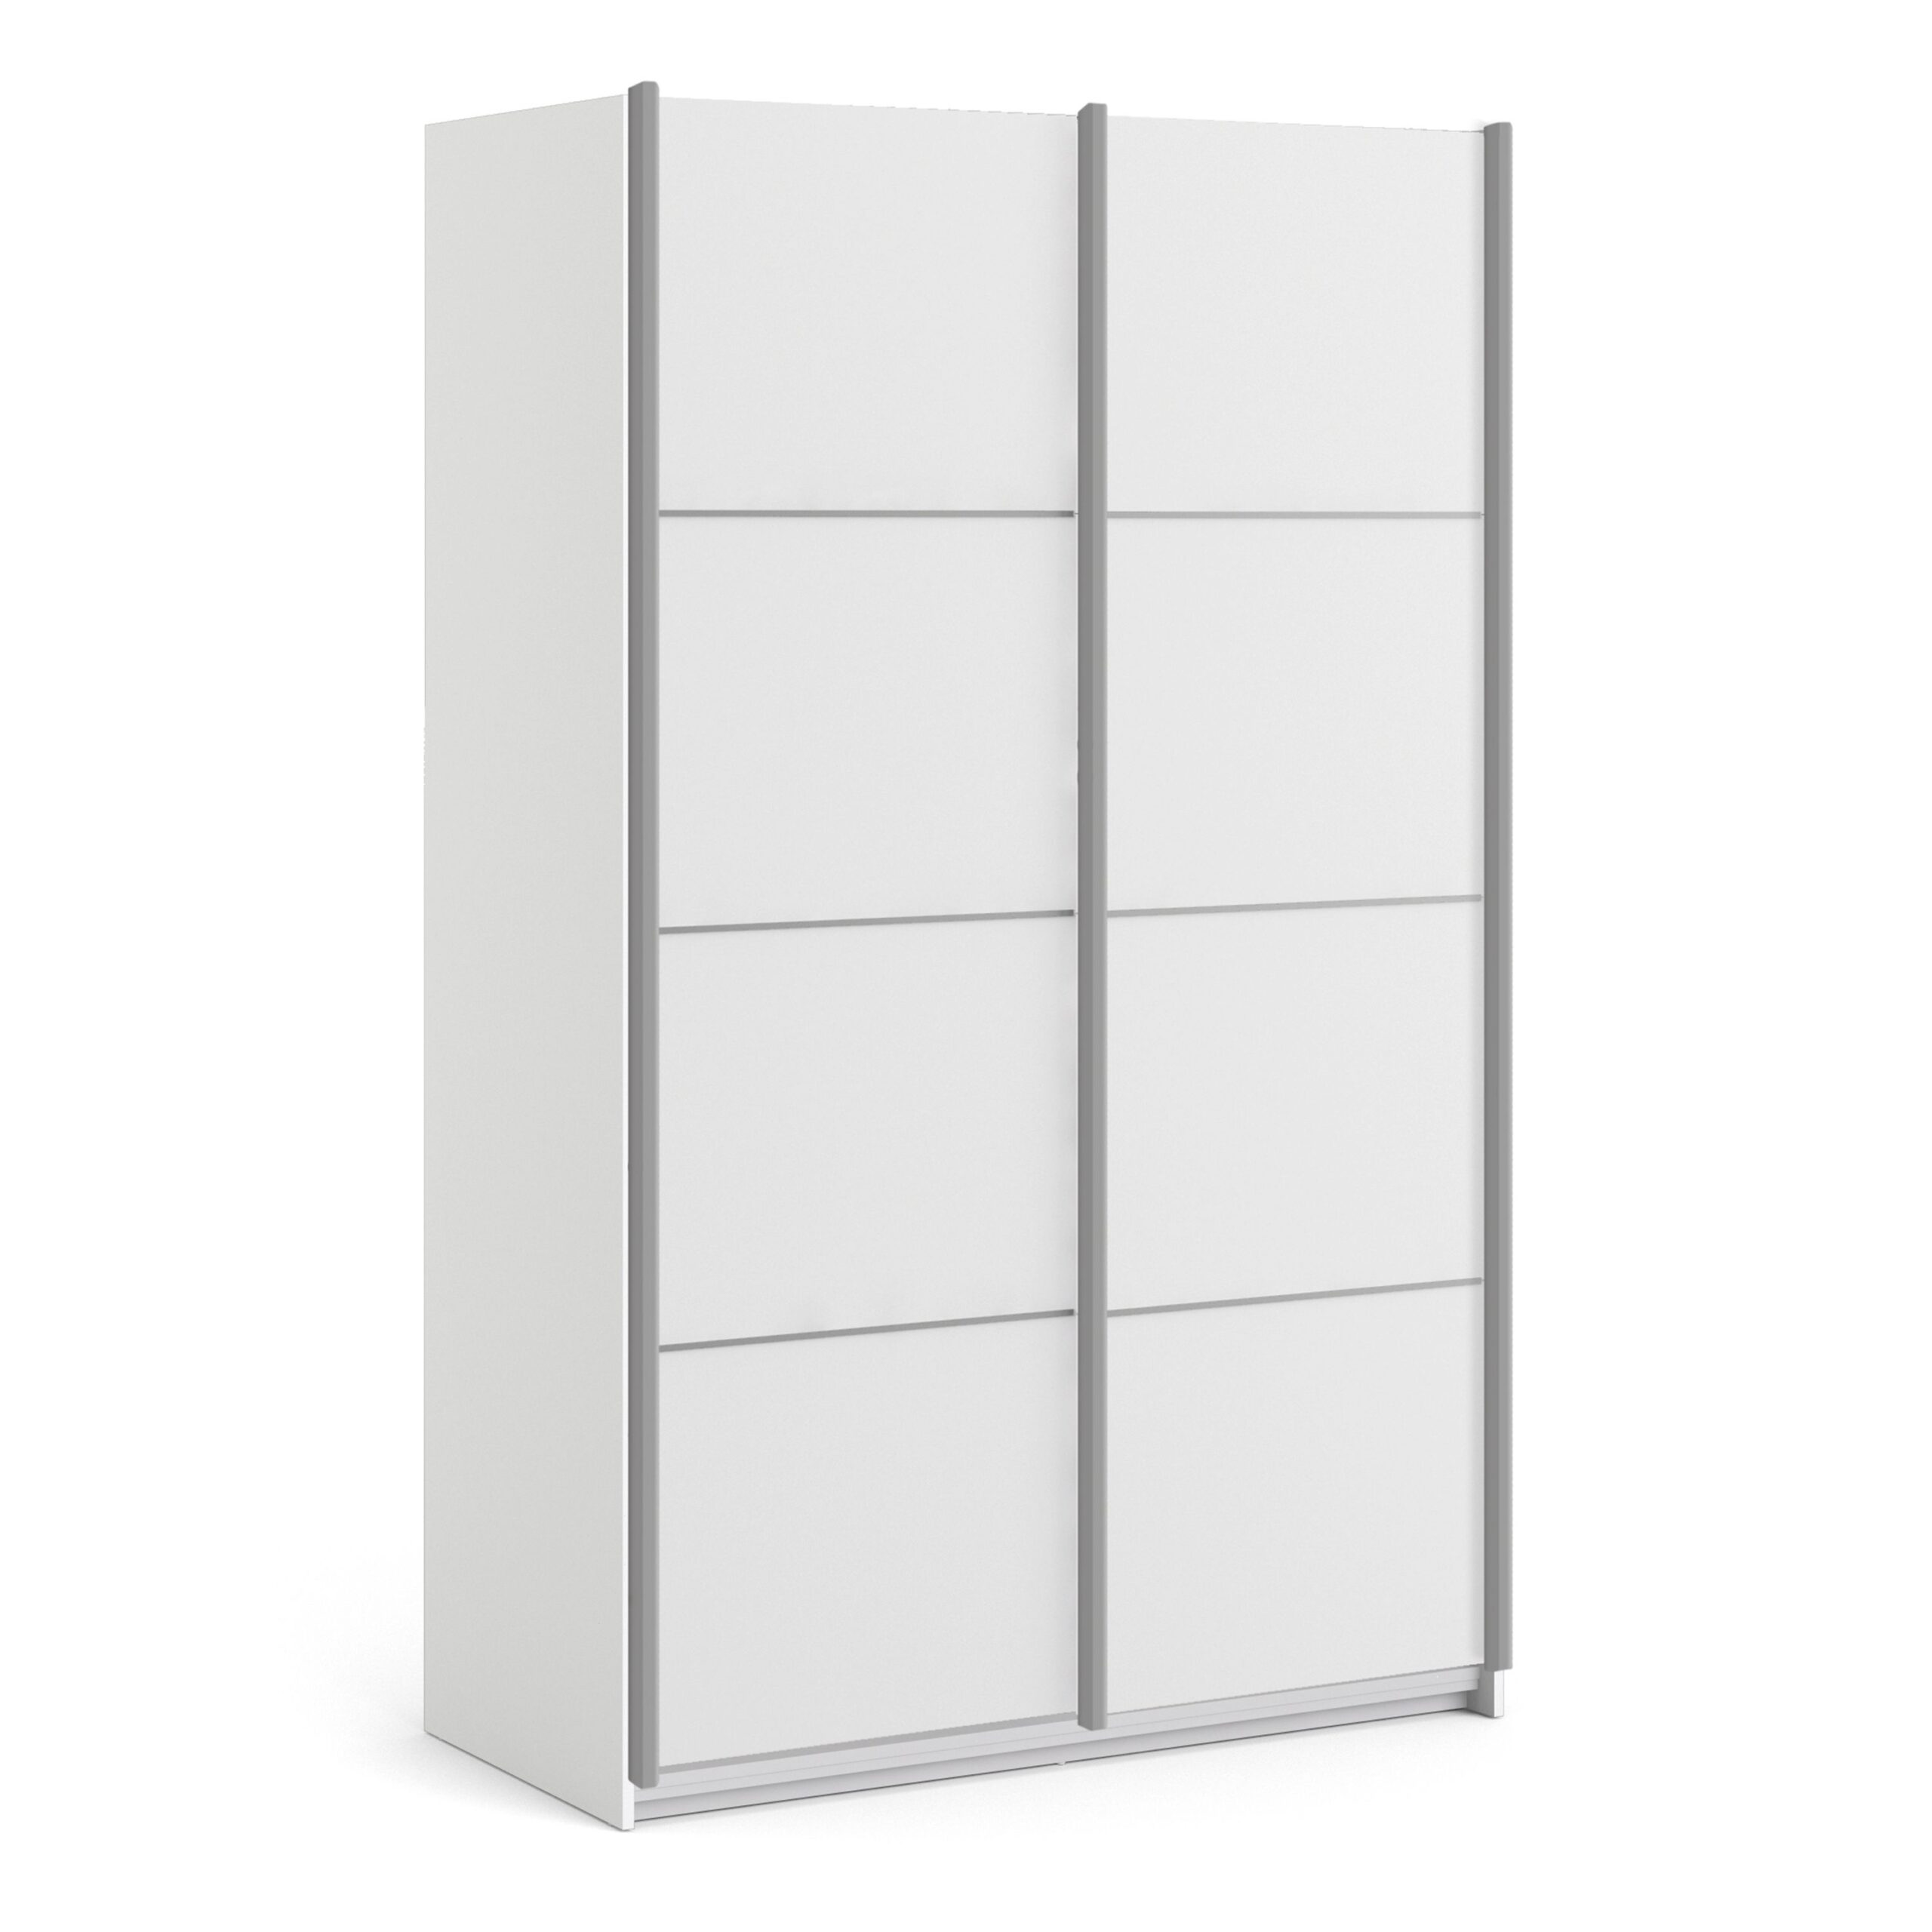 Phillipe Sliding Wardrobe 120cm in White with White Doors with 2 Shelves